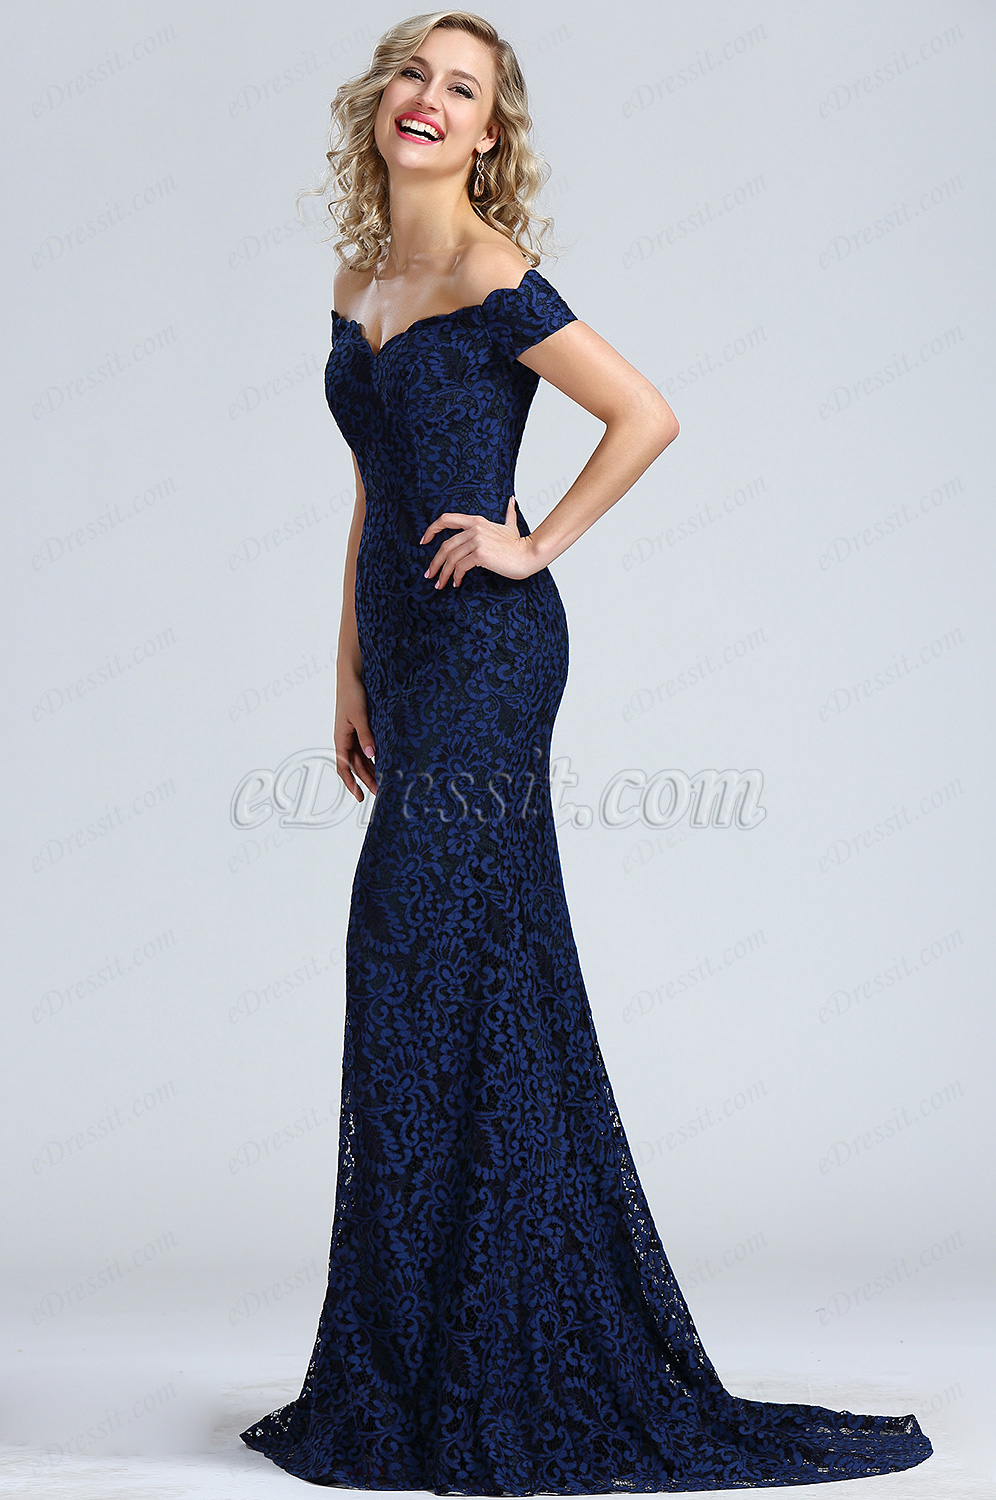 Looking for cheap formal dresses or inexpensive semi-formal party dresses? If you're on a budget and looking for a cheap dress that is as beautiful and elegant as the couture counterparts, shop this assortment of cheap cocktail dresses, formal gowns, and long evening dresses for under $